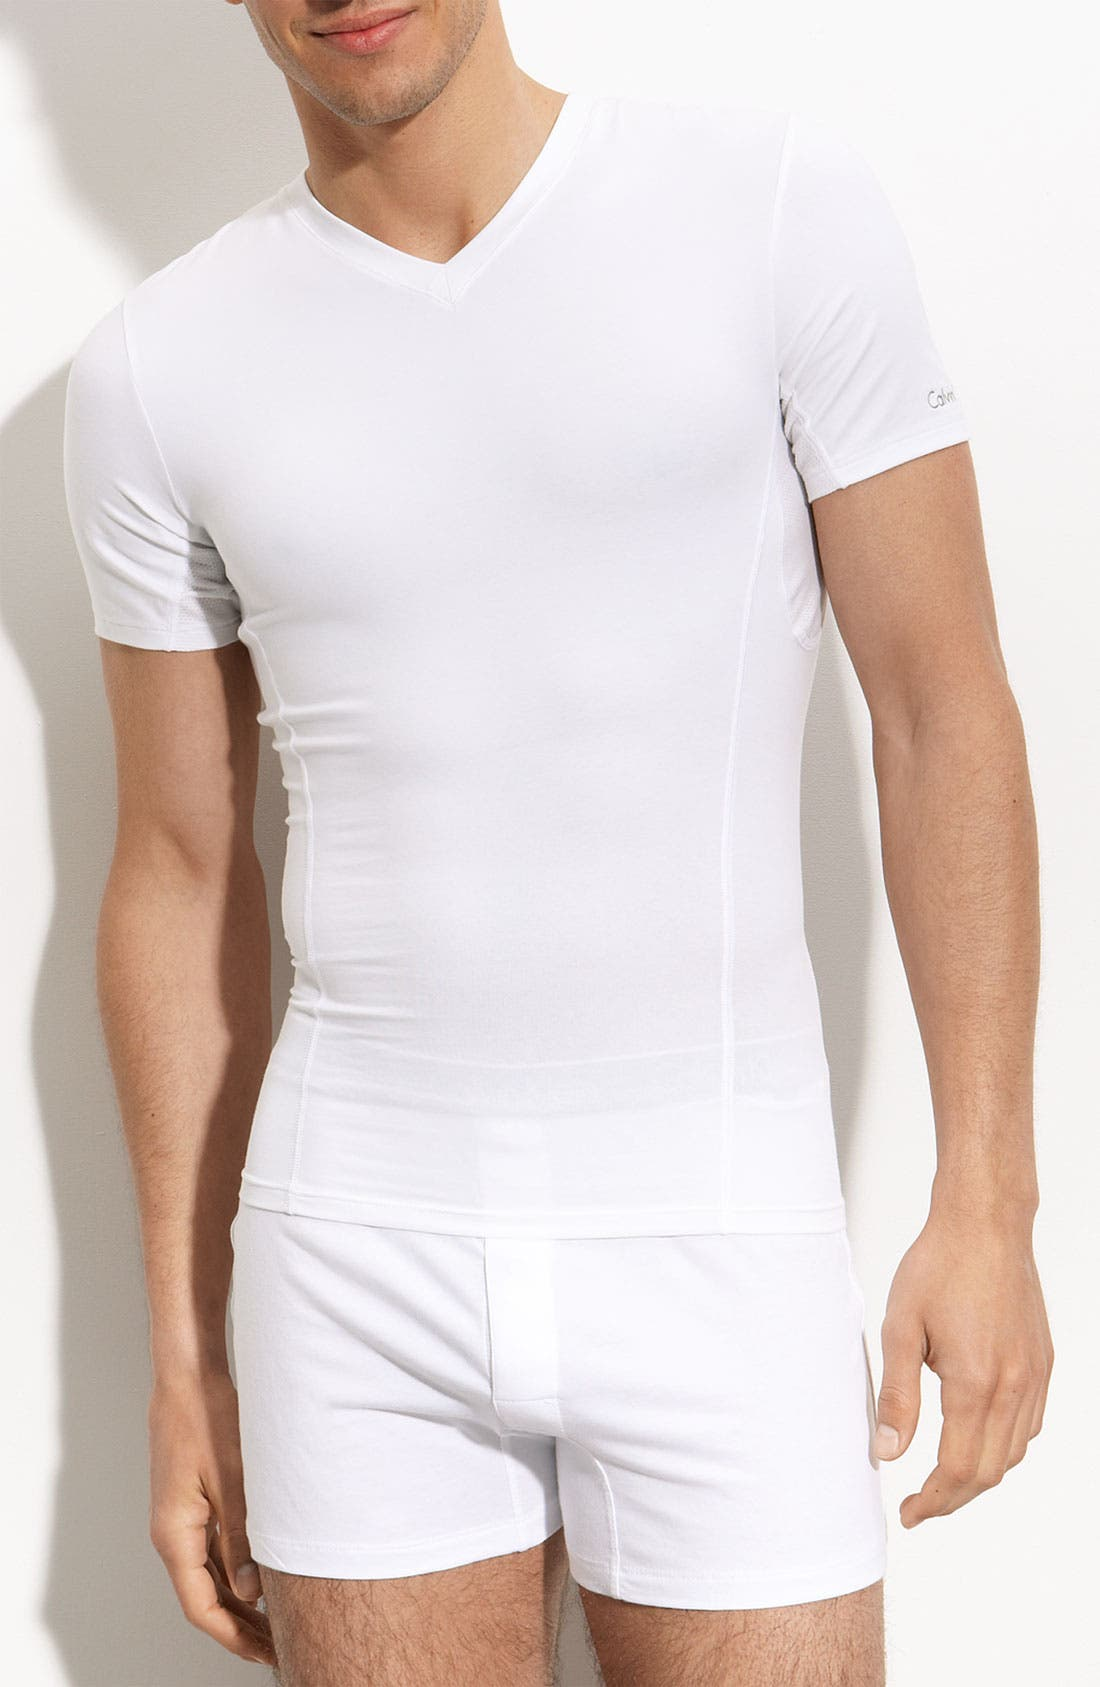 Main Image - Core Sculpt by Calvin Klein 'U8603' V-Neck Compression T-Shirt